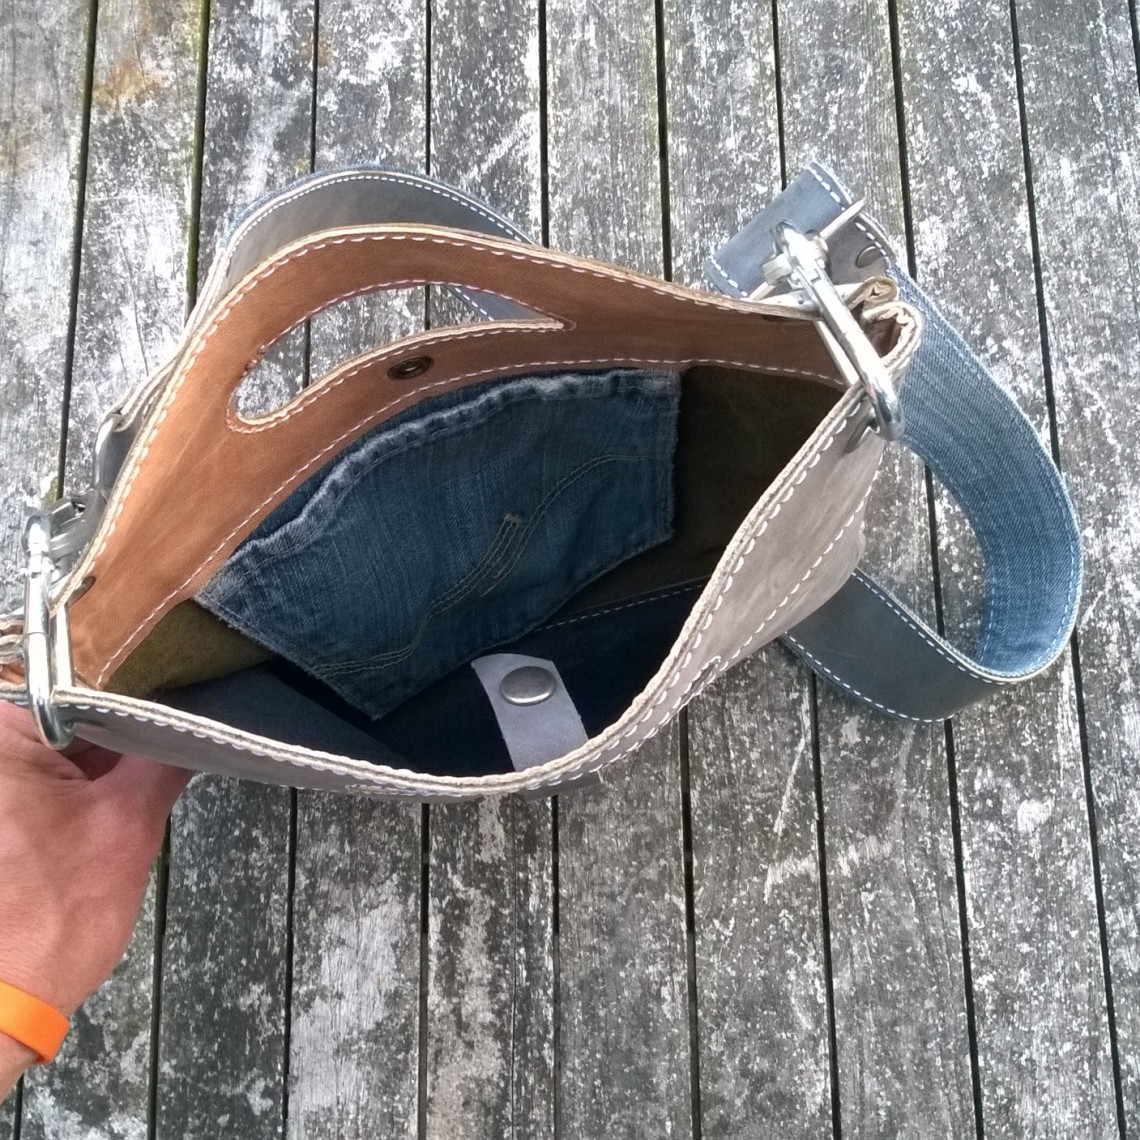 Raw leather bag inside